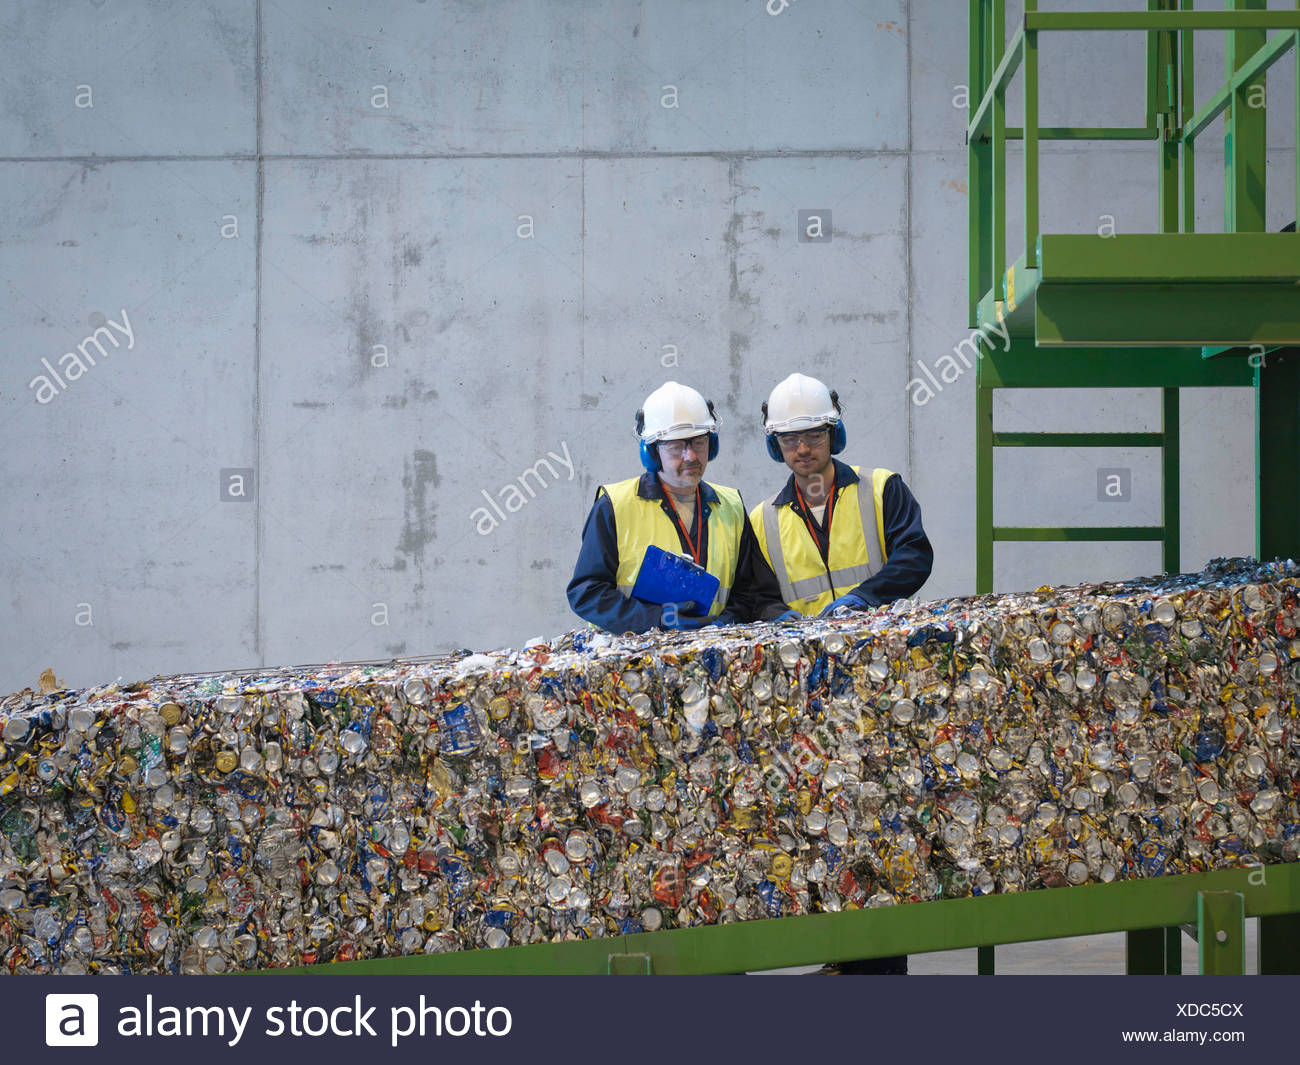 Workers Inspecting Bales Of Tin Cans - Stock Image